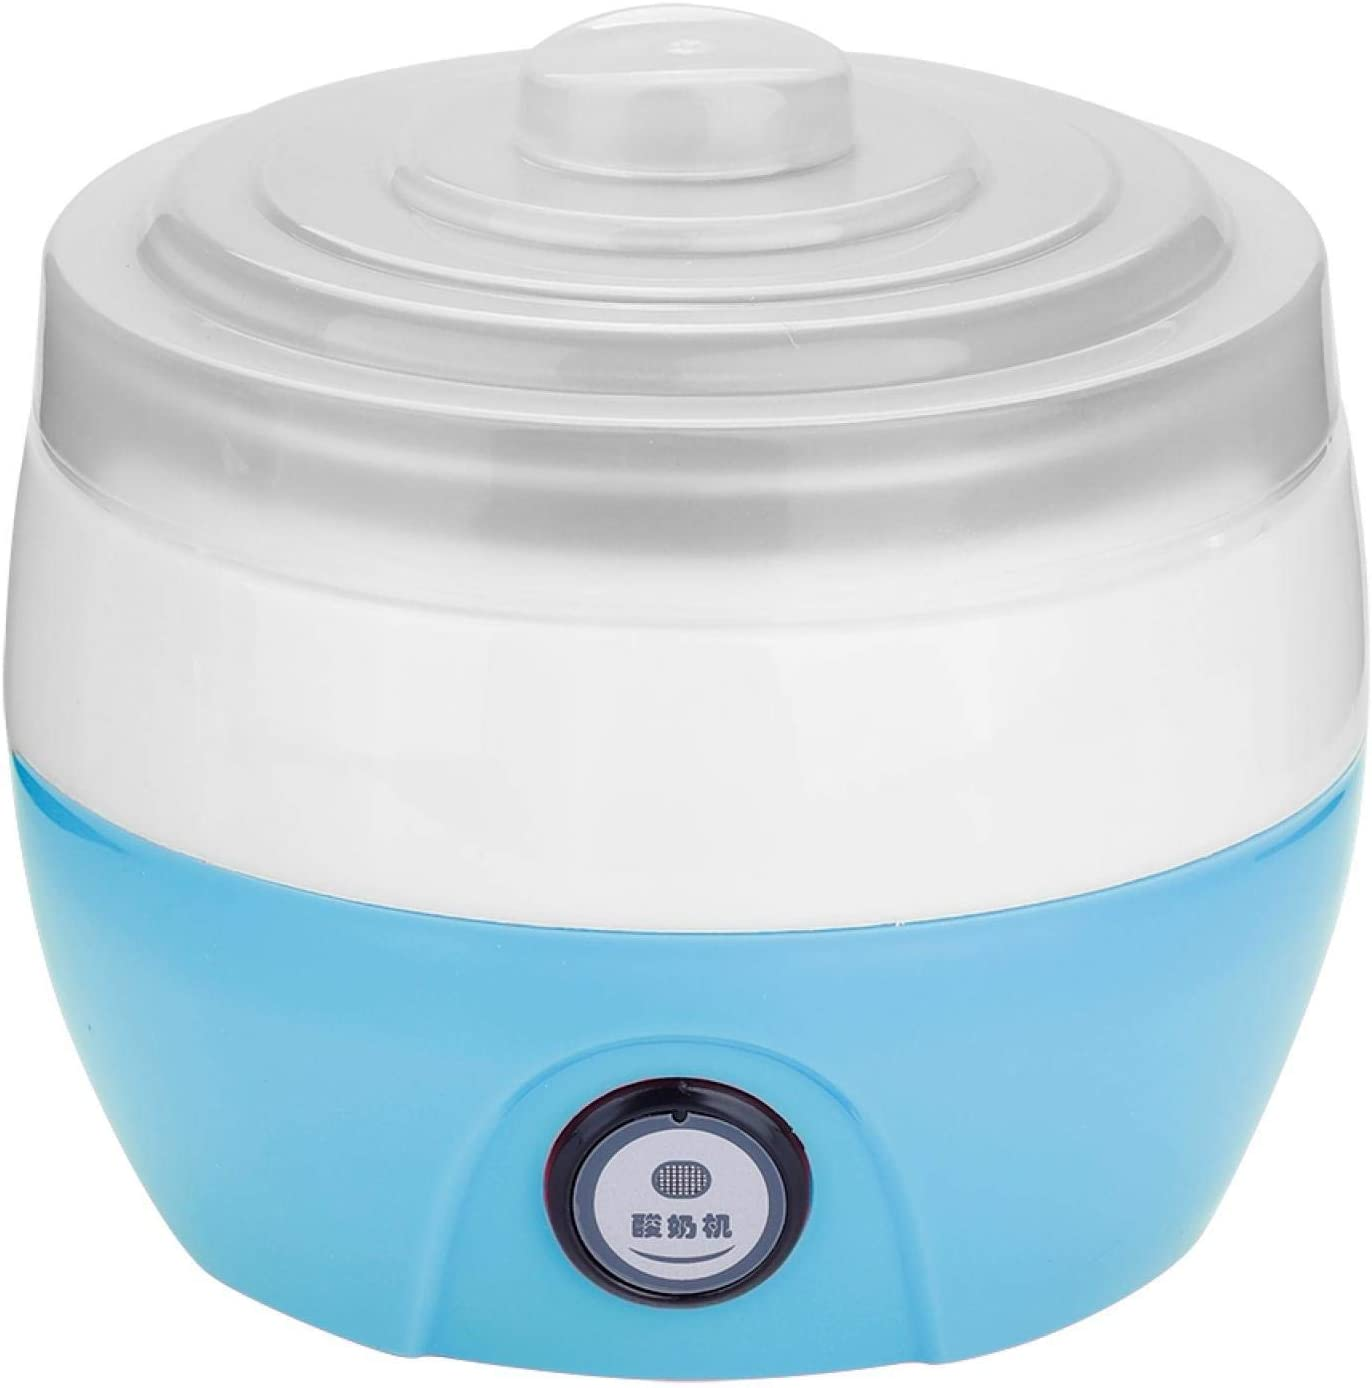 Automatic Ice Cream Maker Household Yogurt Digital Cash special price 1L excellence DIY